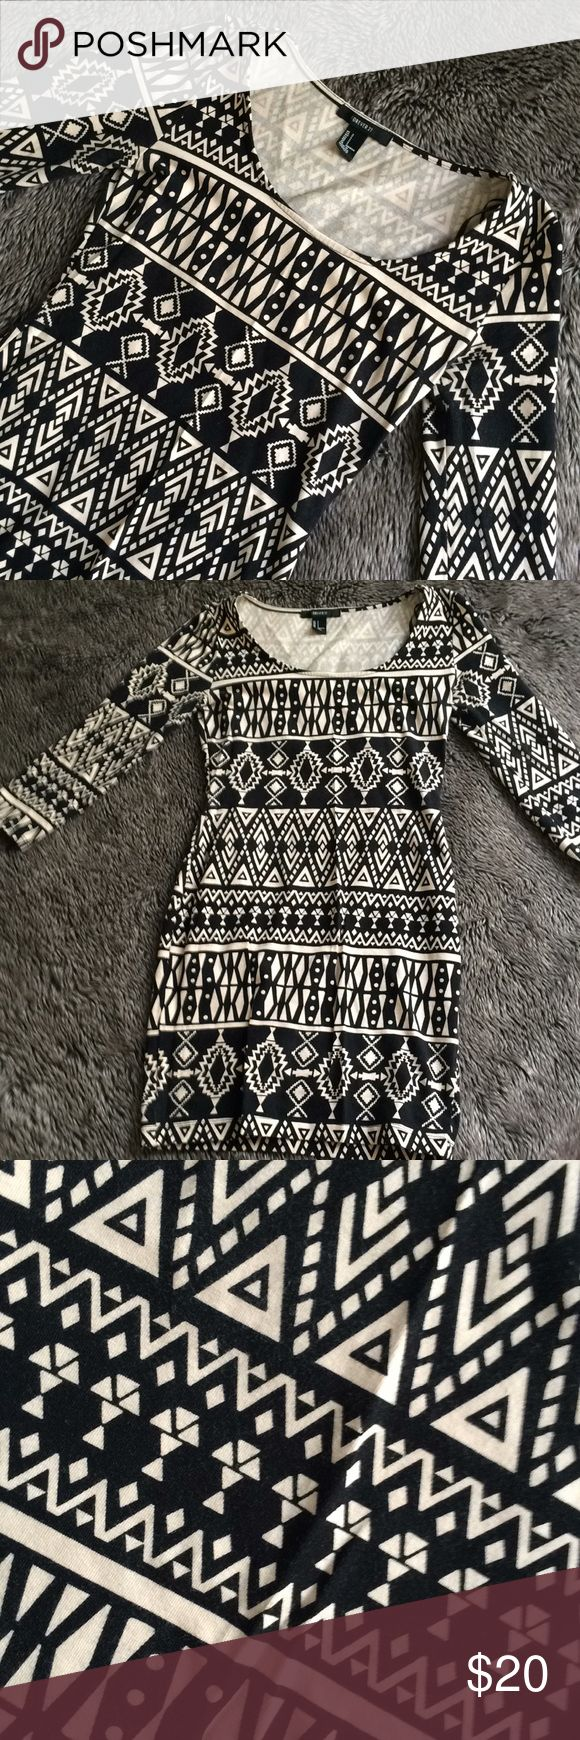 Aztec Mini dress Forever 21 Aztec pattern mini dress. Gorgeous! Worn once! Super comfortable and stretchy material. Neckline is very flattering yet modest and allows wear with all types of necklace lengths. Great alone with a pump or tucked into a skirt. One of my favorites! Forever 21 Dresses Mini